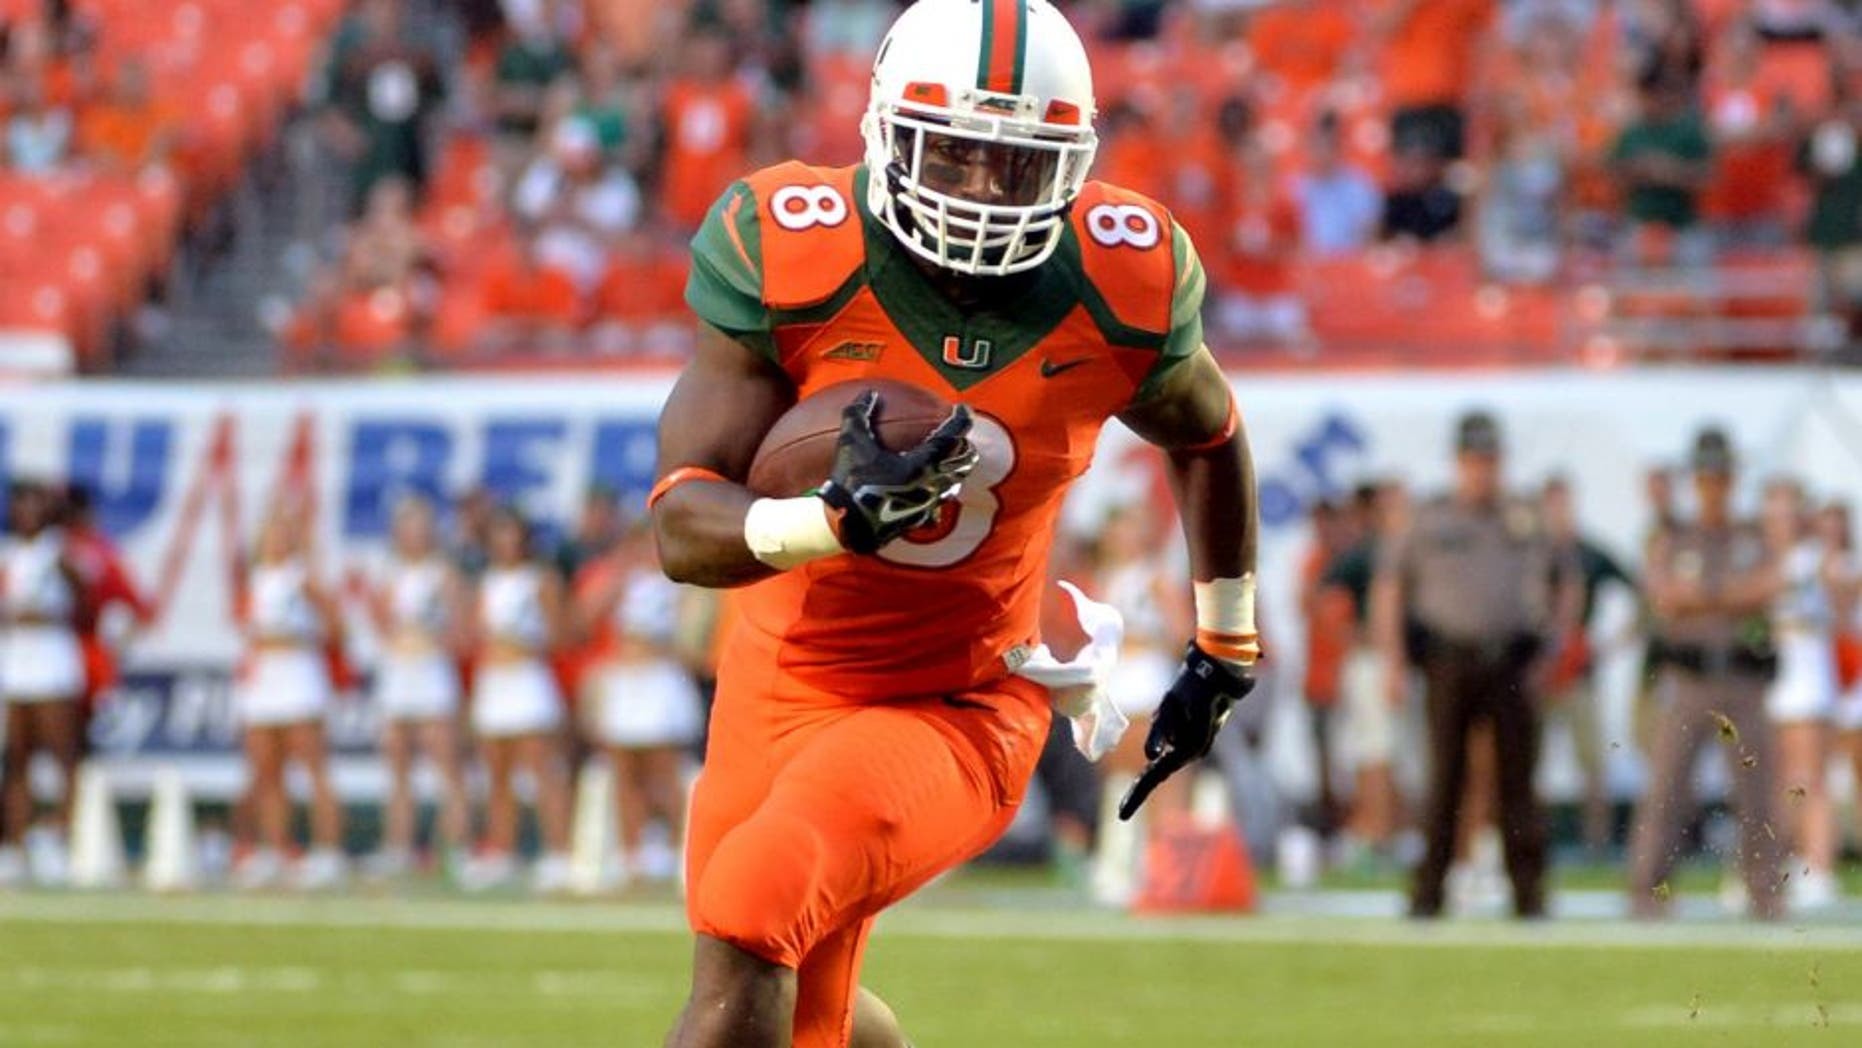 Sep 6, 2014; Miami Gardens, FL, USA; Miami Hurricanes running back Duke Johnson (8) runs against Florida A&M Rattlers defense during the first half at Sun Life Stadium. Mandatory Credit: Steve Mitchell-USA TODAY Sports